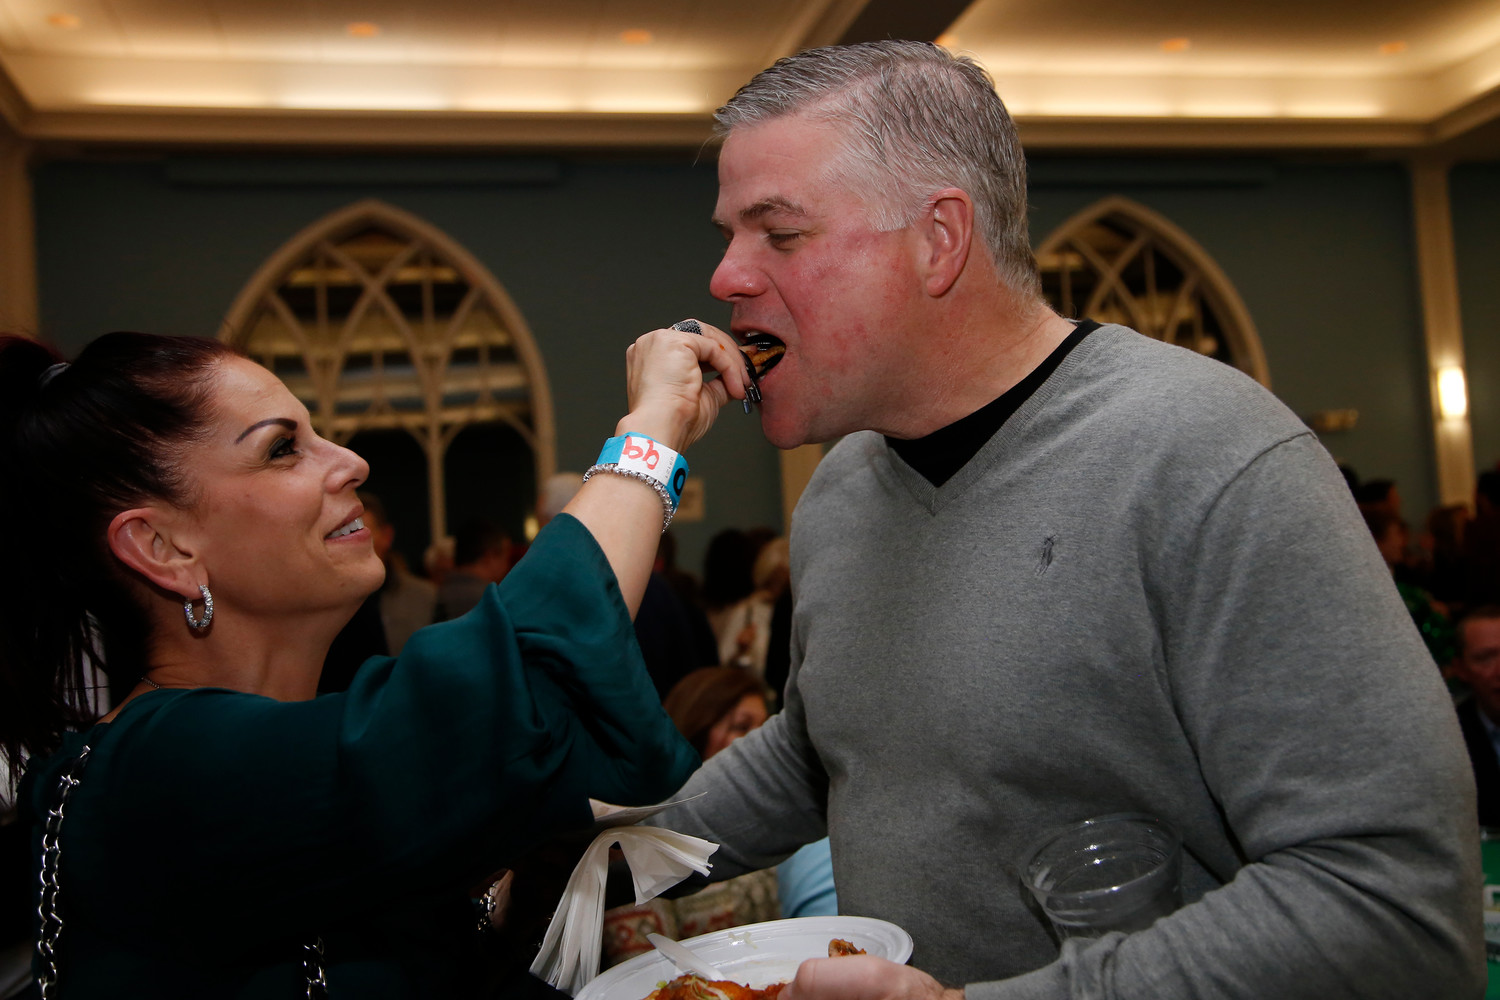 Rockville Centre resident Andrea Connolly gave her husband, Larry, a taste of her fried wonton.